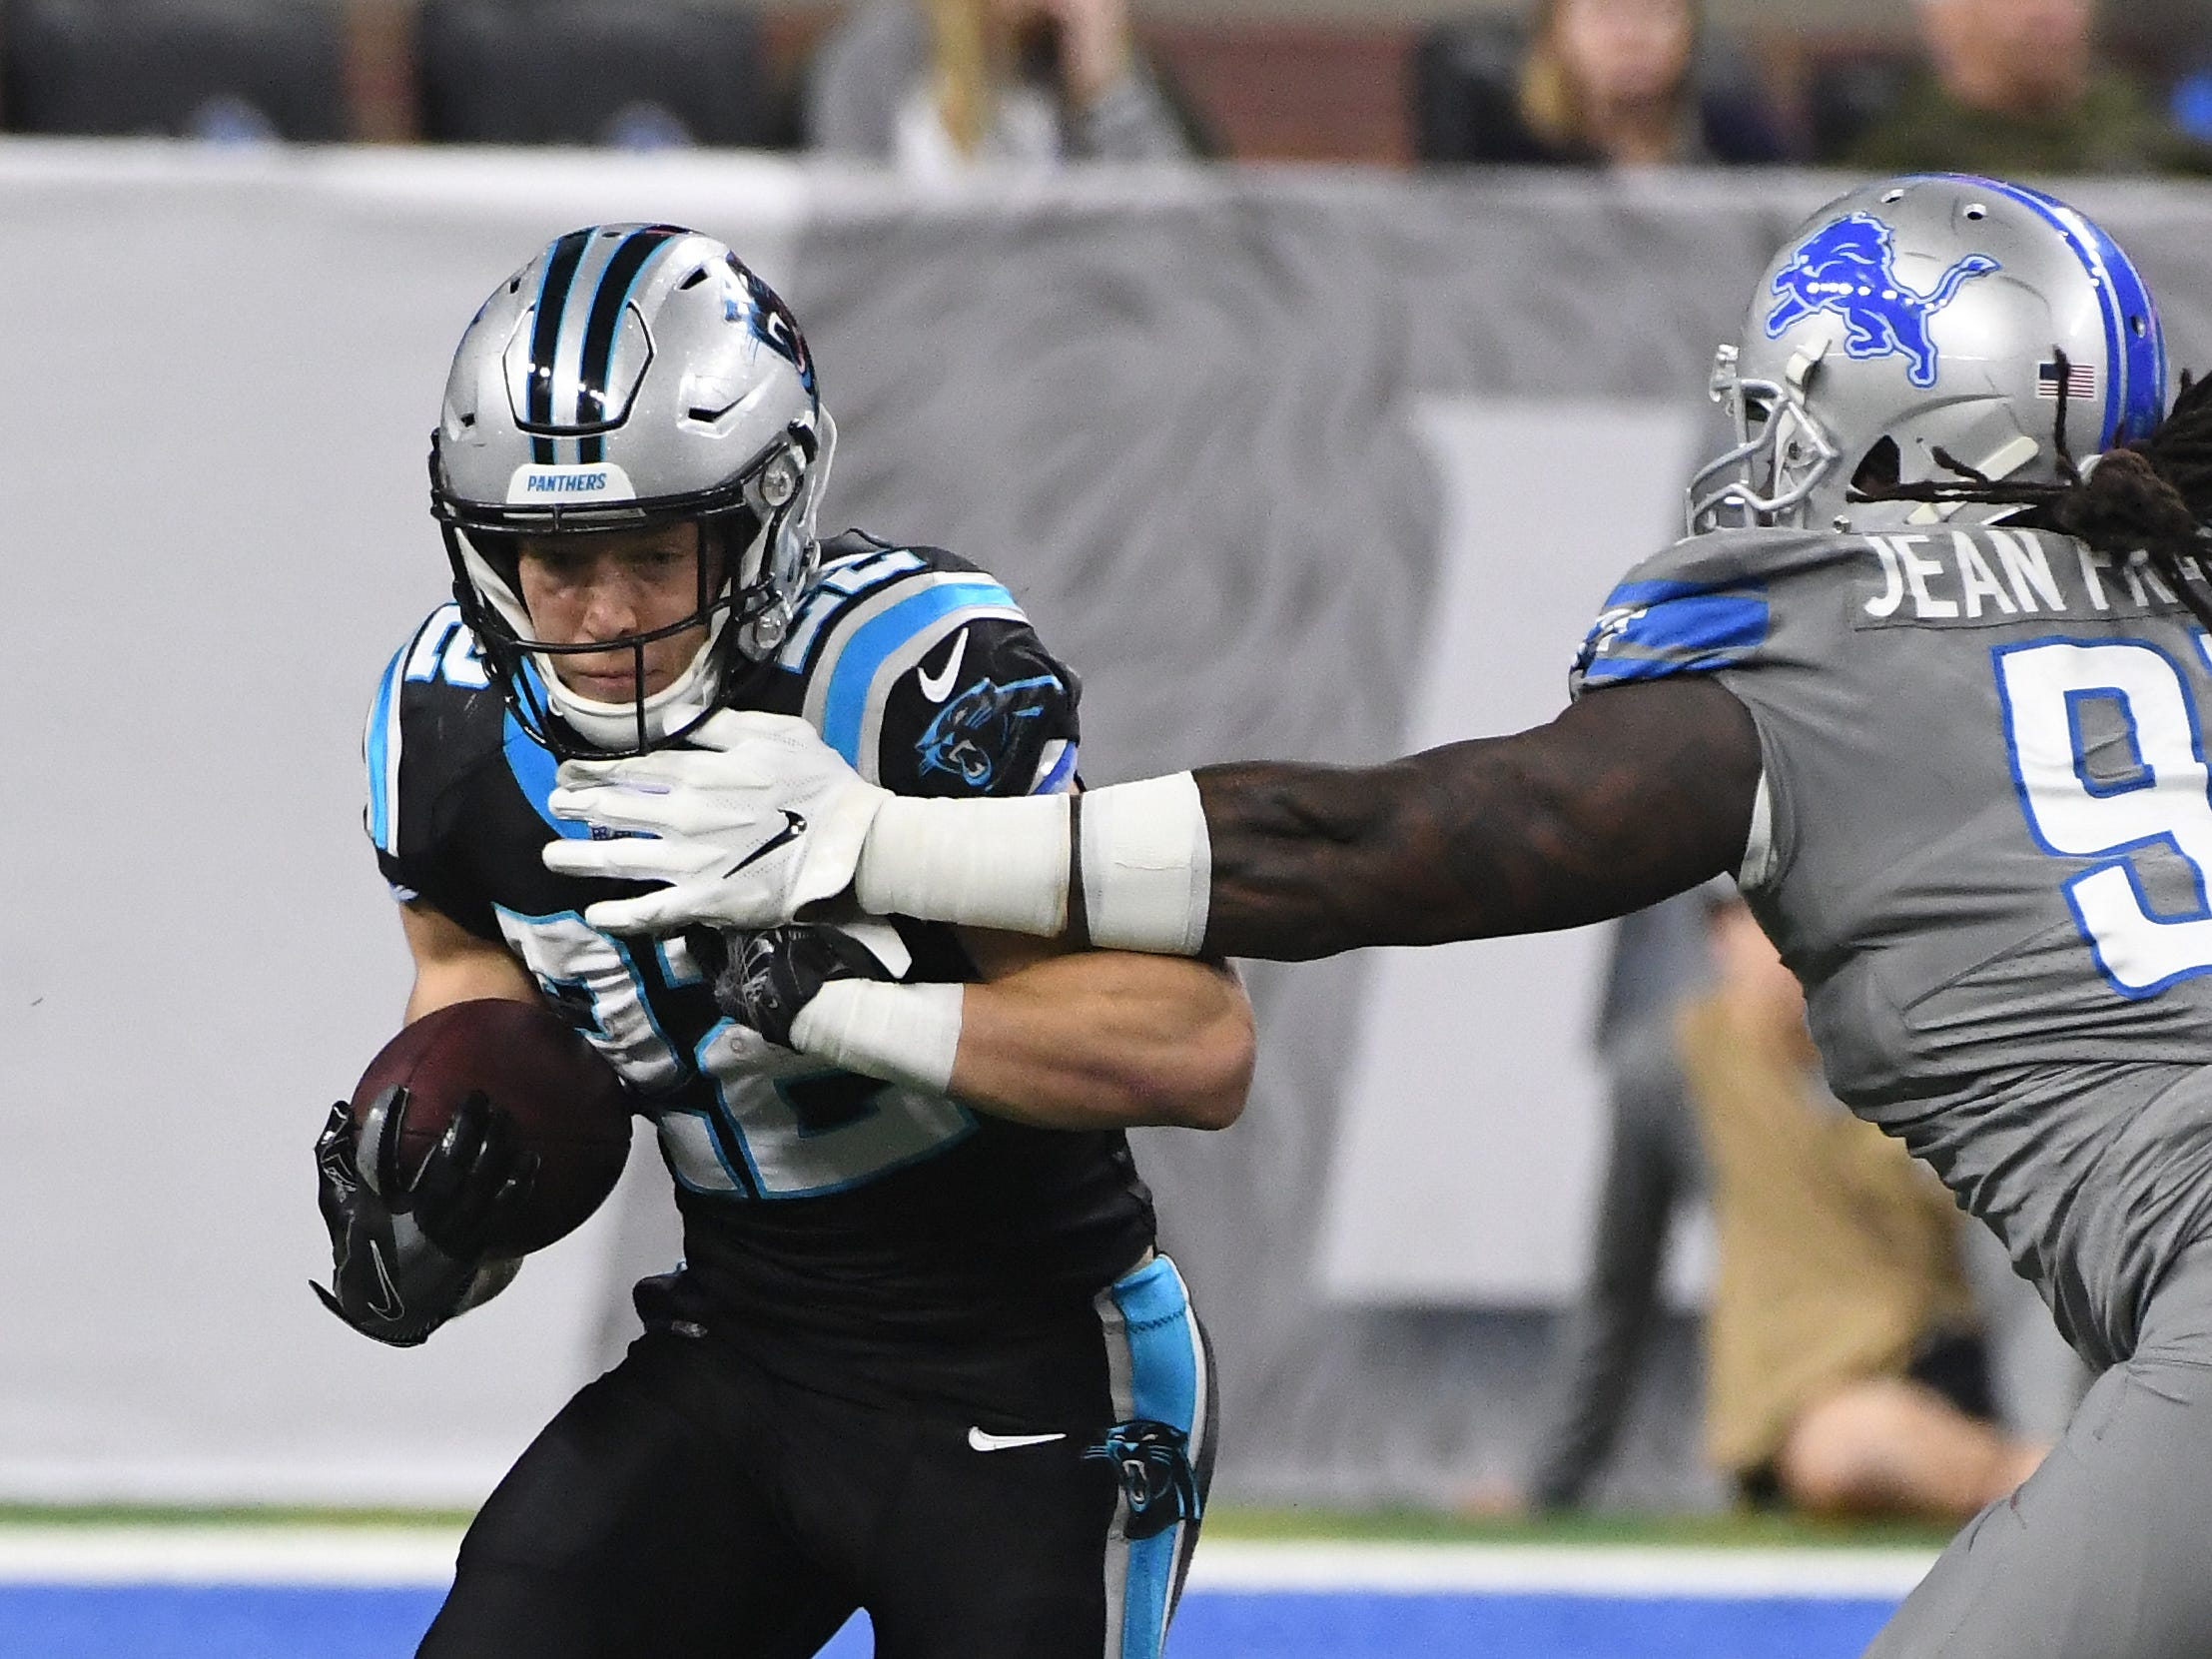 Panthers running back Christian McCaffrey gets around Lions' Ricky Jean Francois on a run in the second quarter.